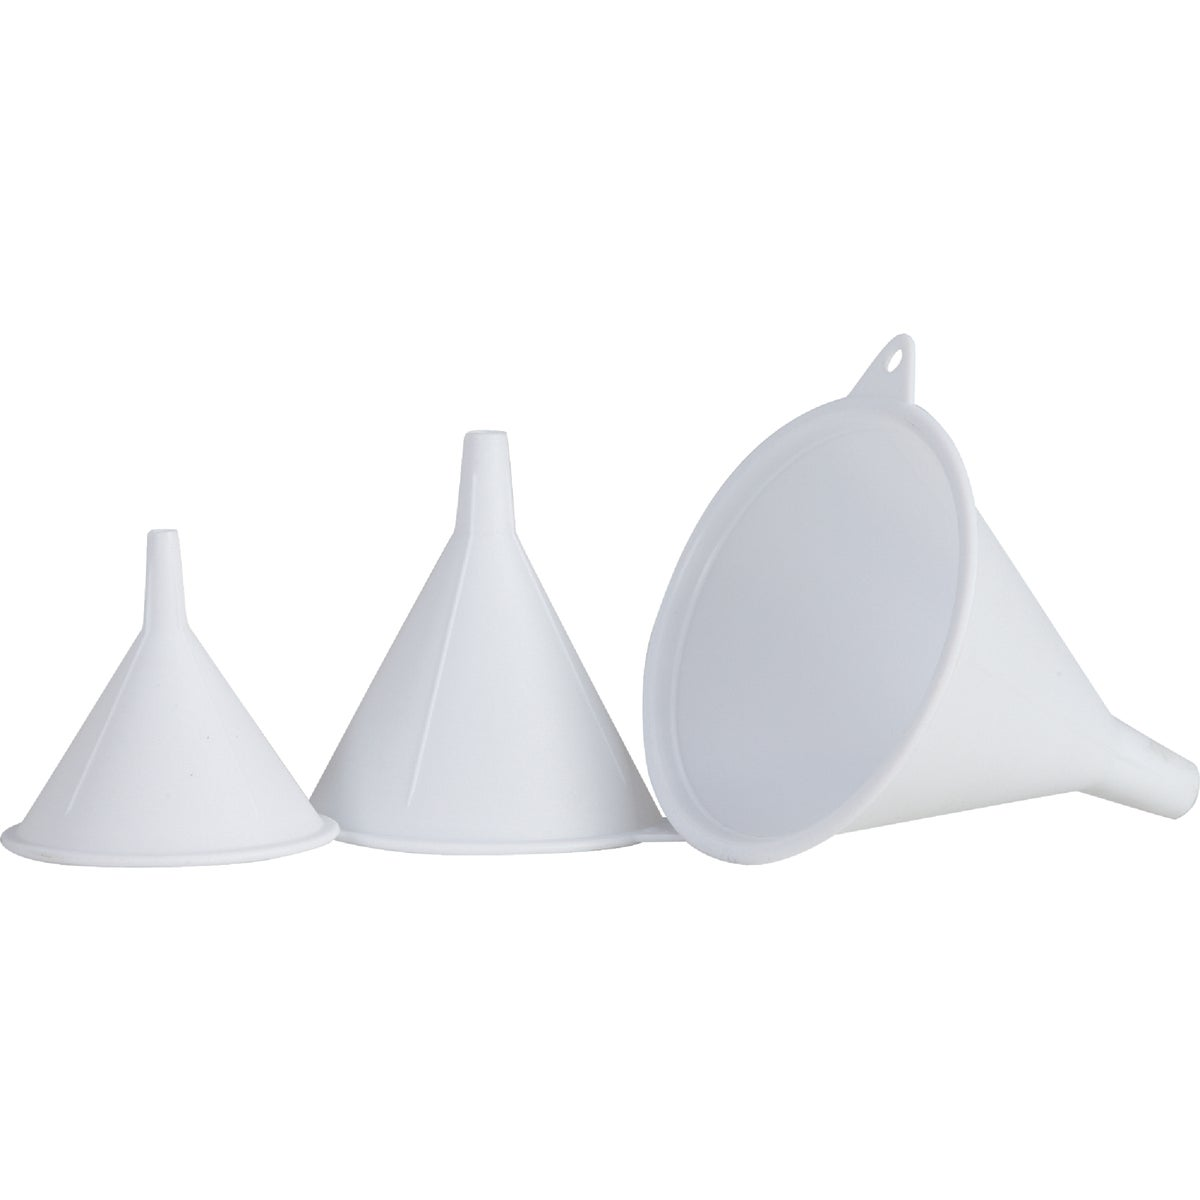 3PC PLASTIC FUNNEL - 243 by Norpro